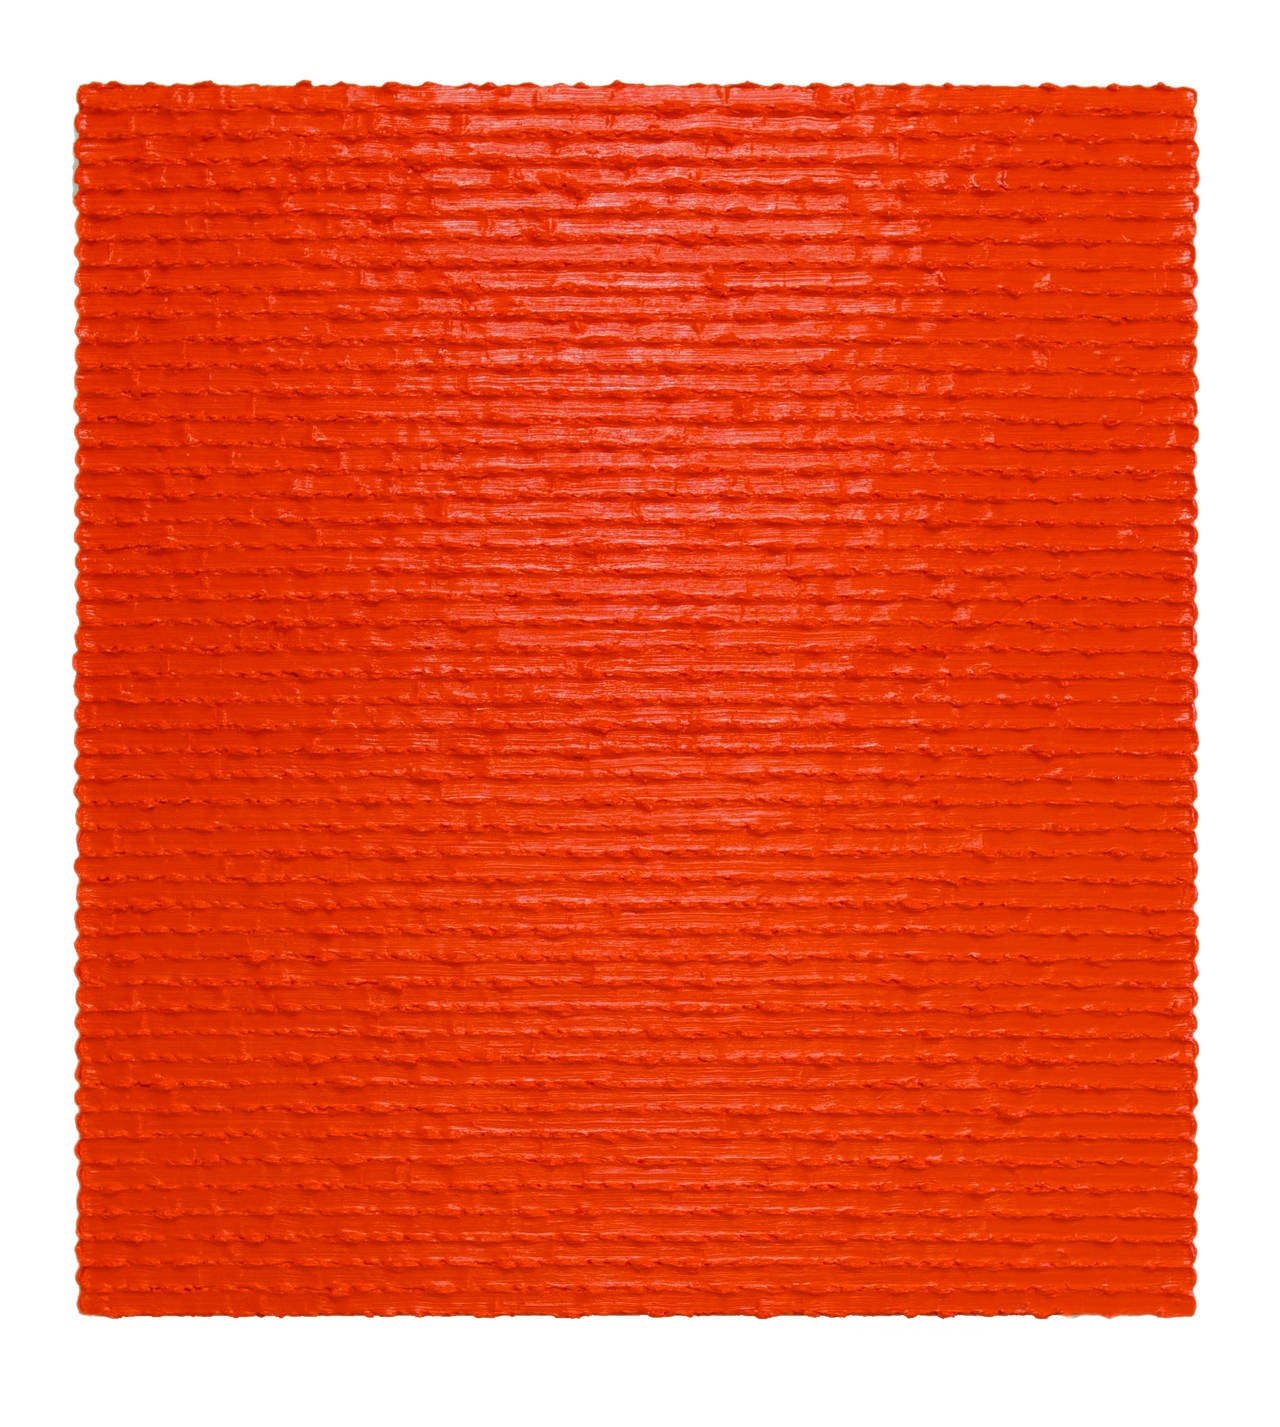 John Noestheden Abstract Painting - Red Field